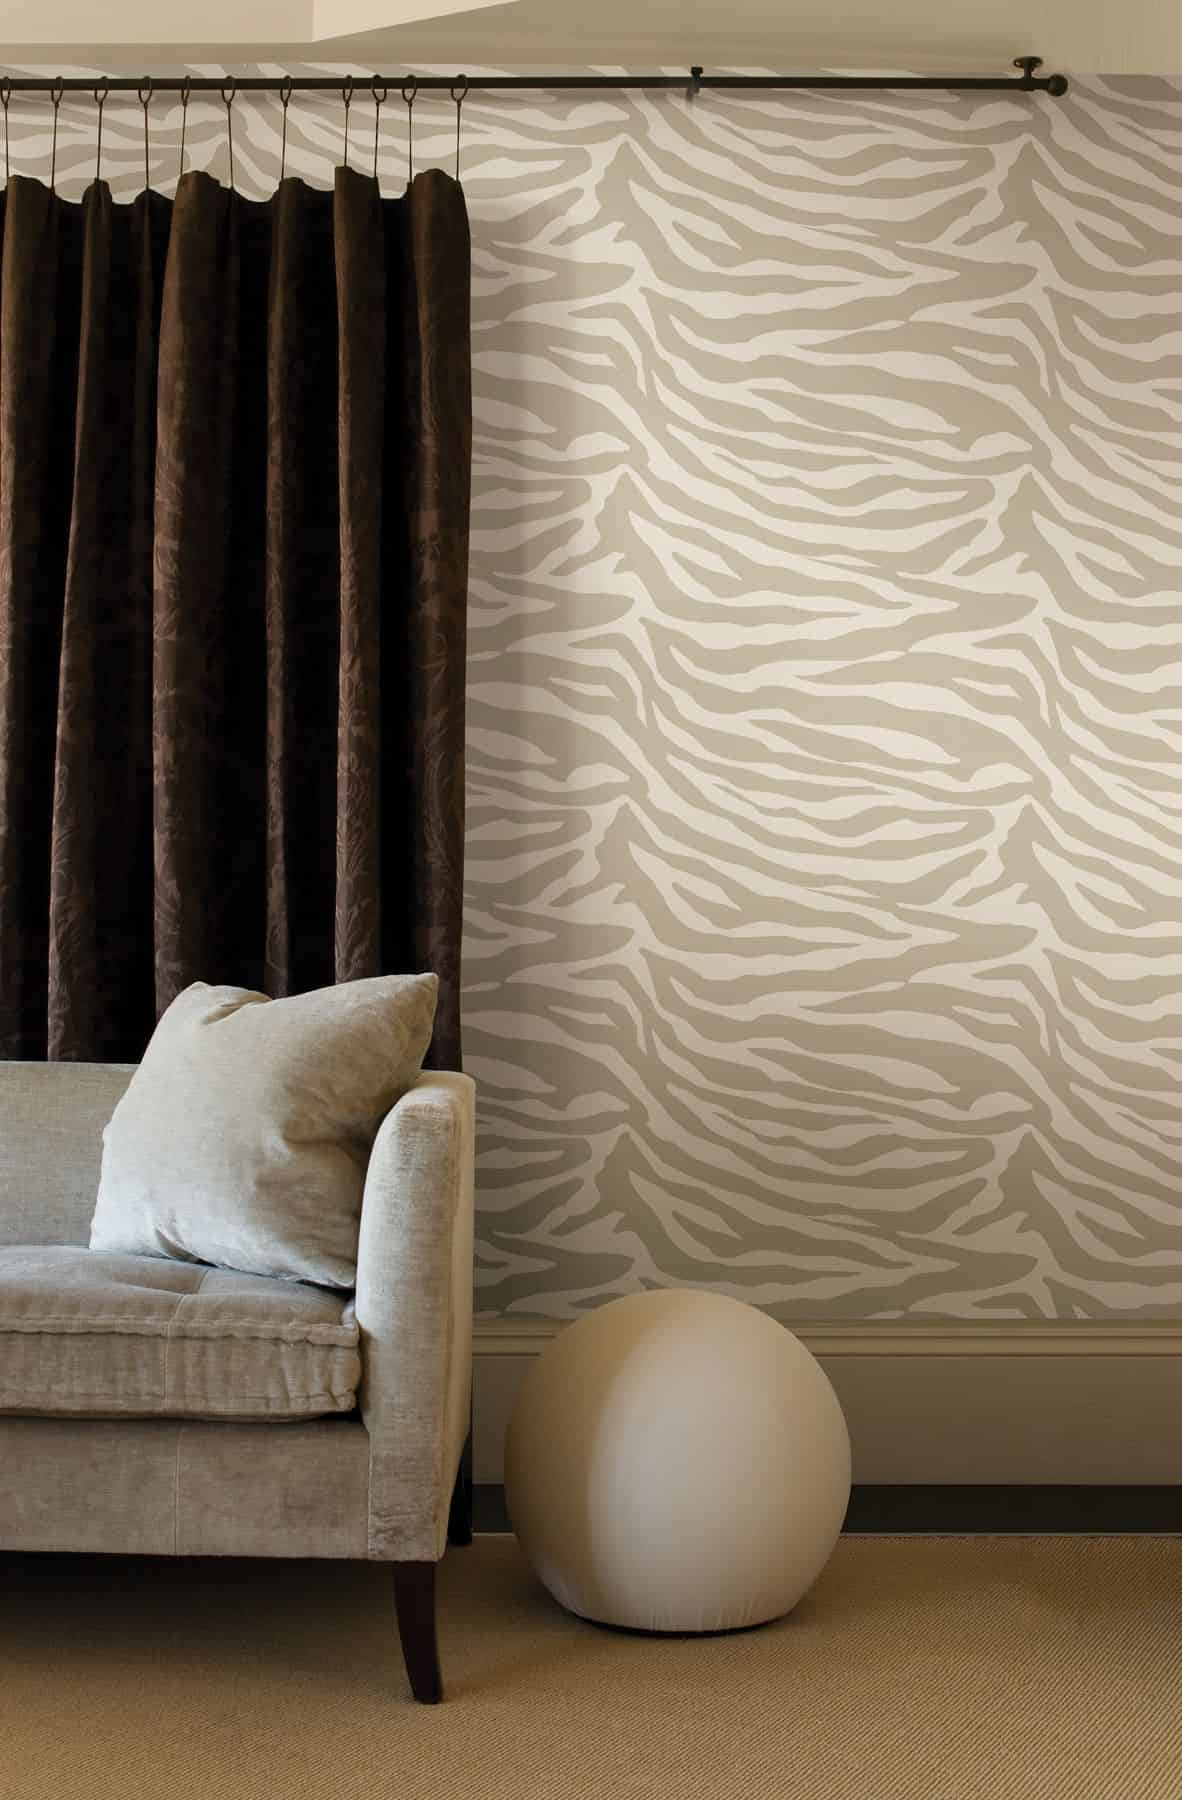 Animal print wallpaper Stylish Ways To Decorate Your Home With Understated Animal Print